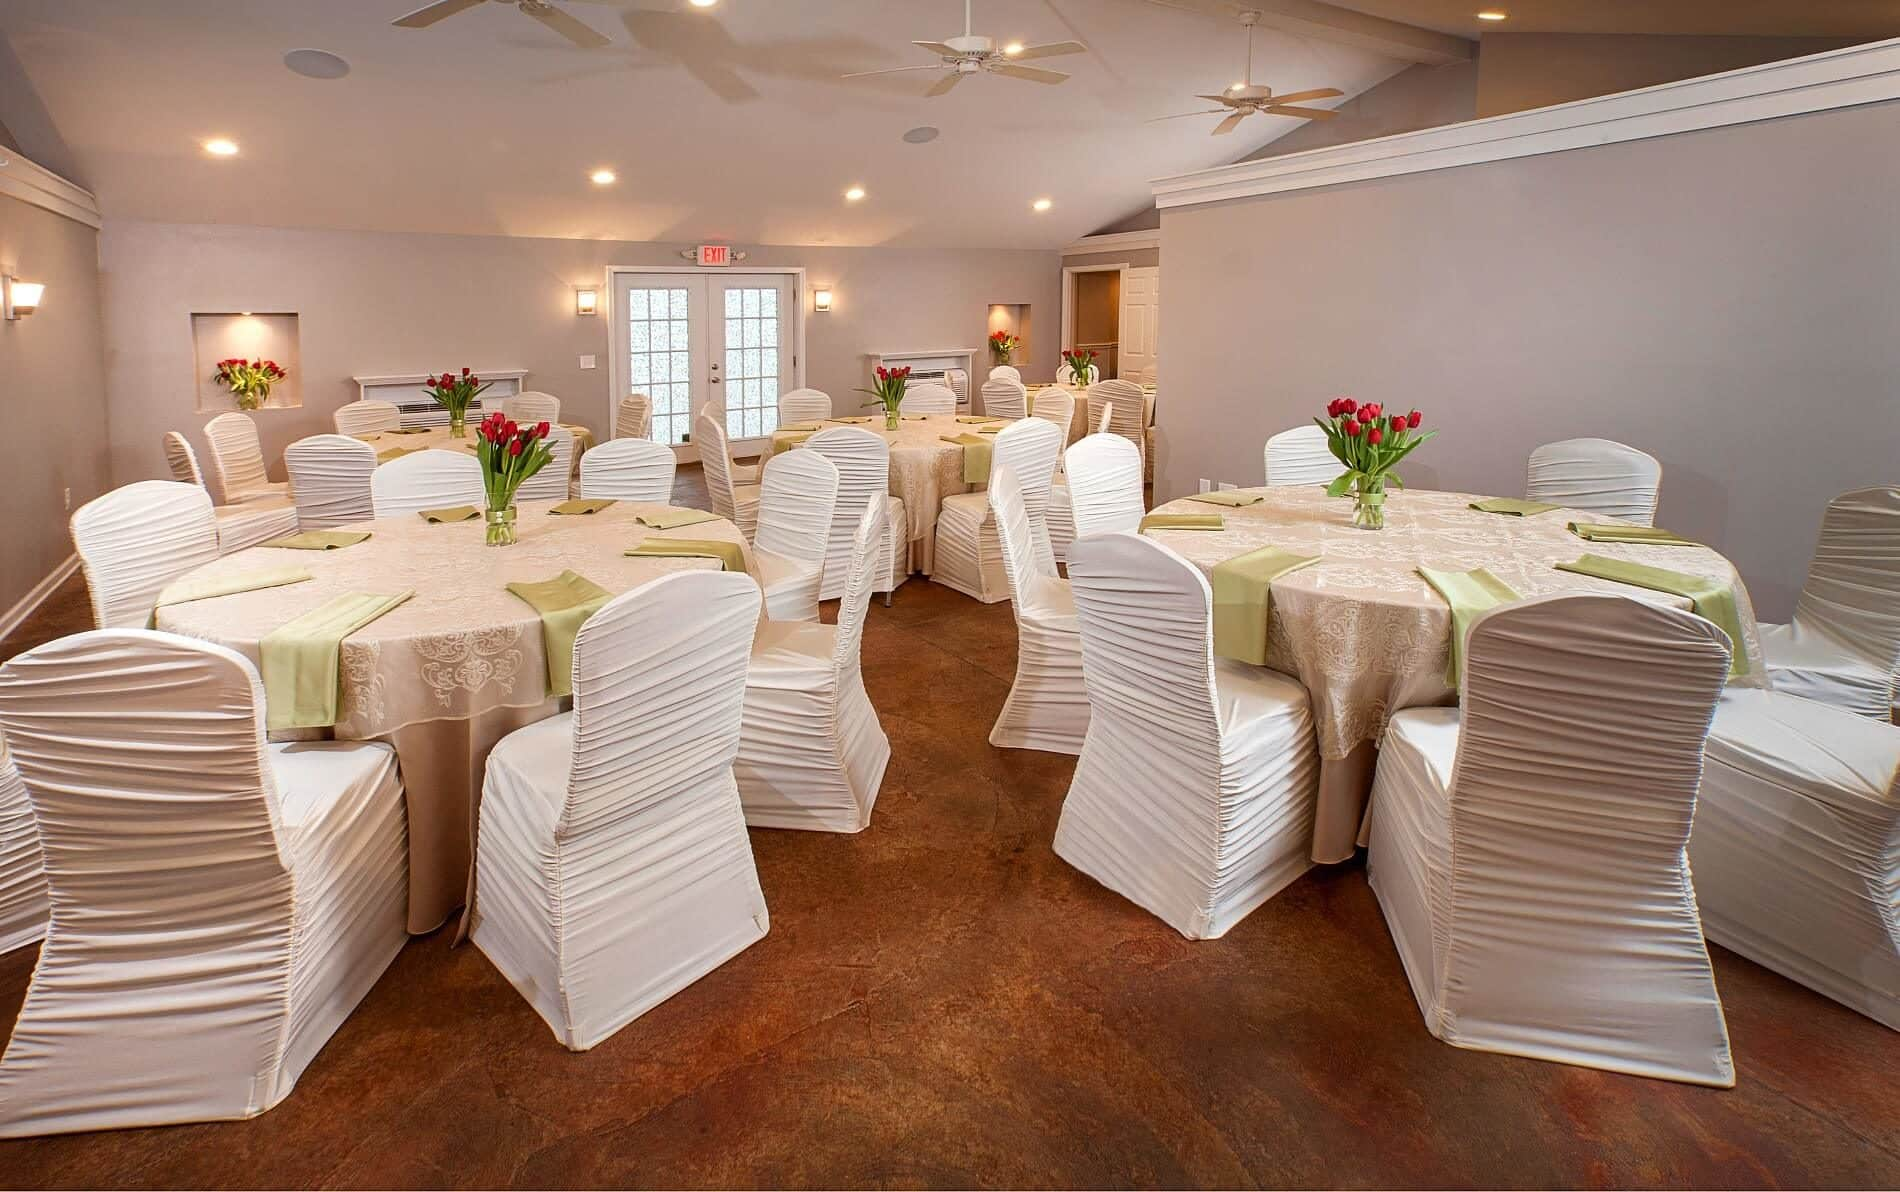 Large room with 6 round tables covered in beige lace tablecloths and white covered chairs